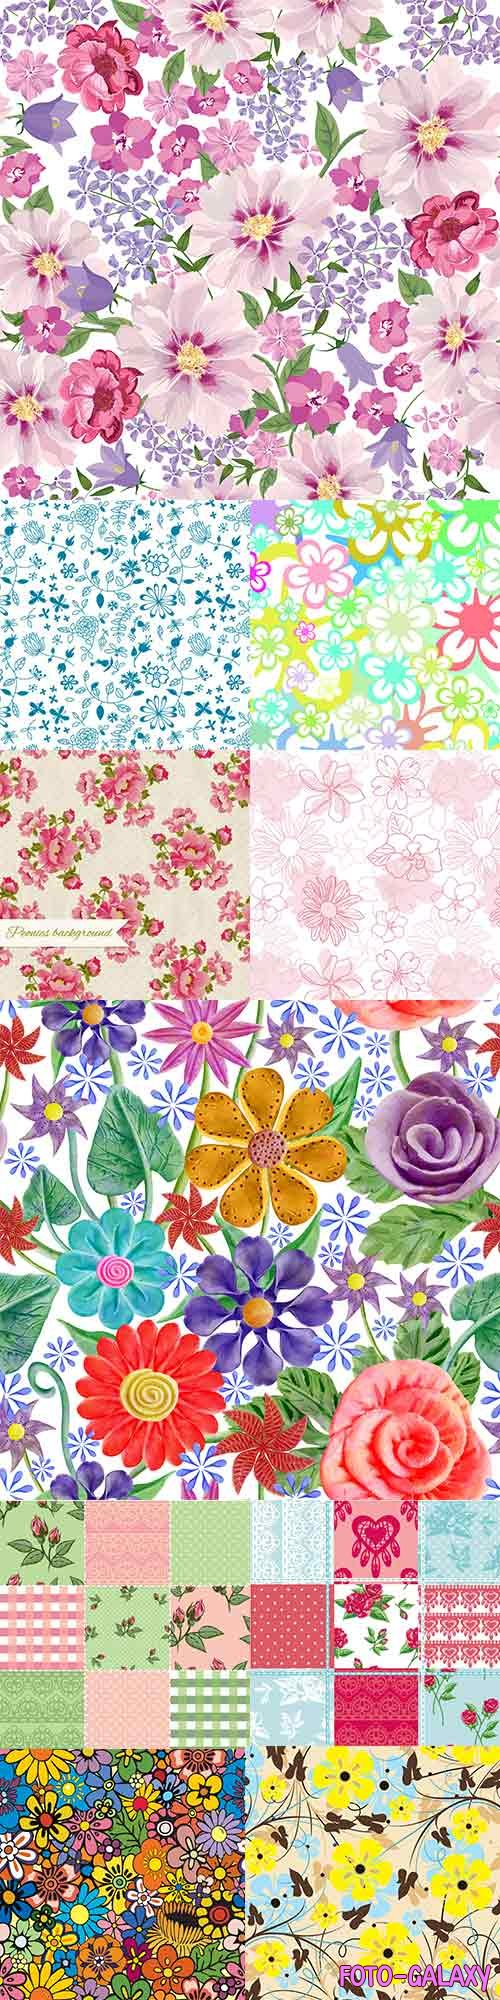 Floral vector patterns